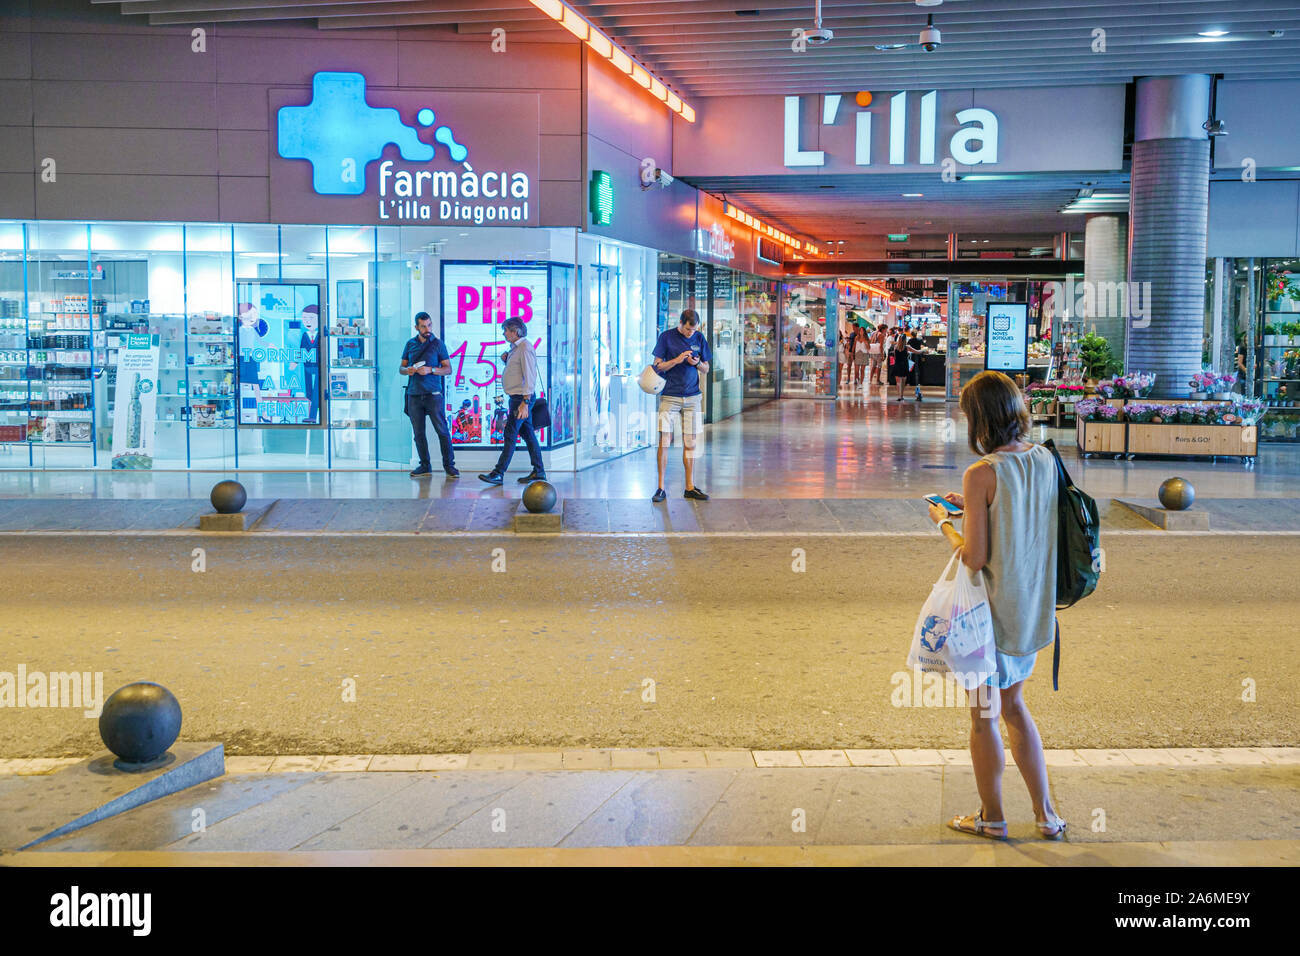 añadir Todo el mundo Proporcional  Lilla Diagonal High Resolution Stock Photography and Images - Alamy